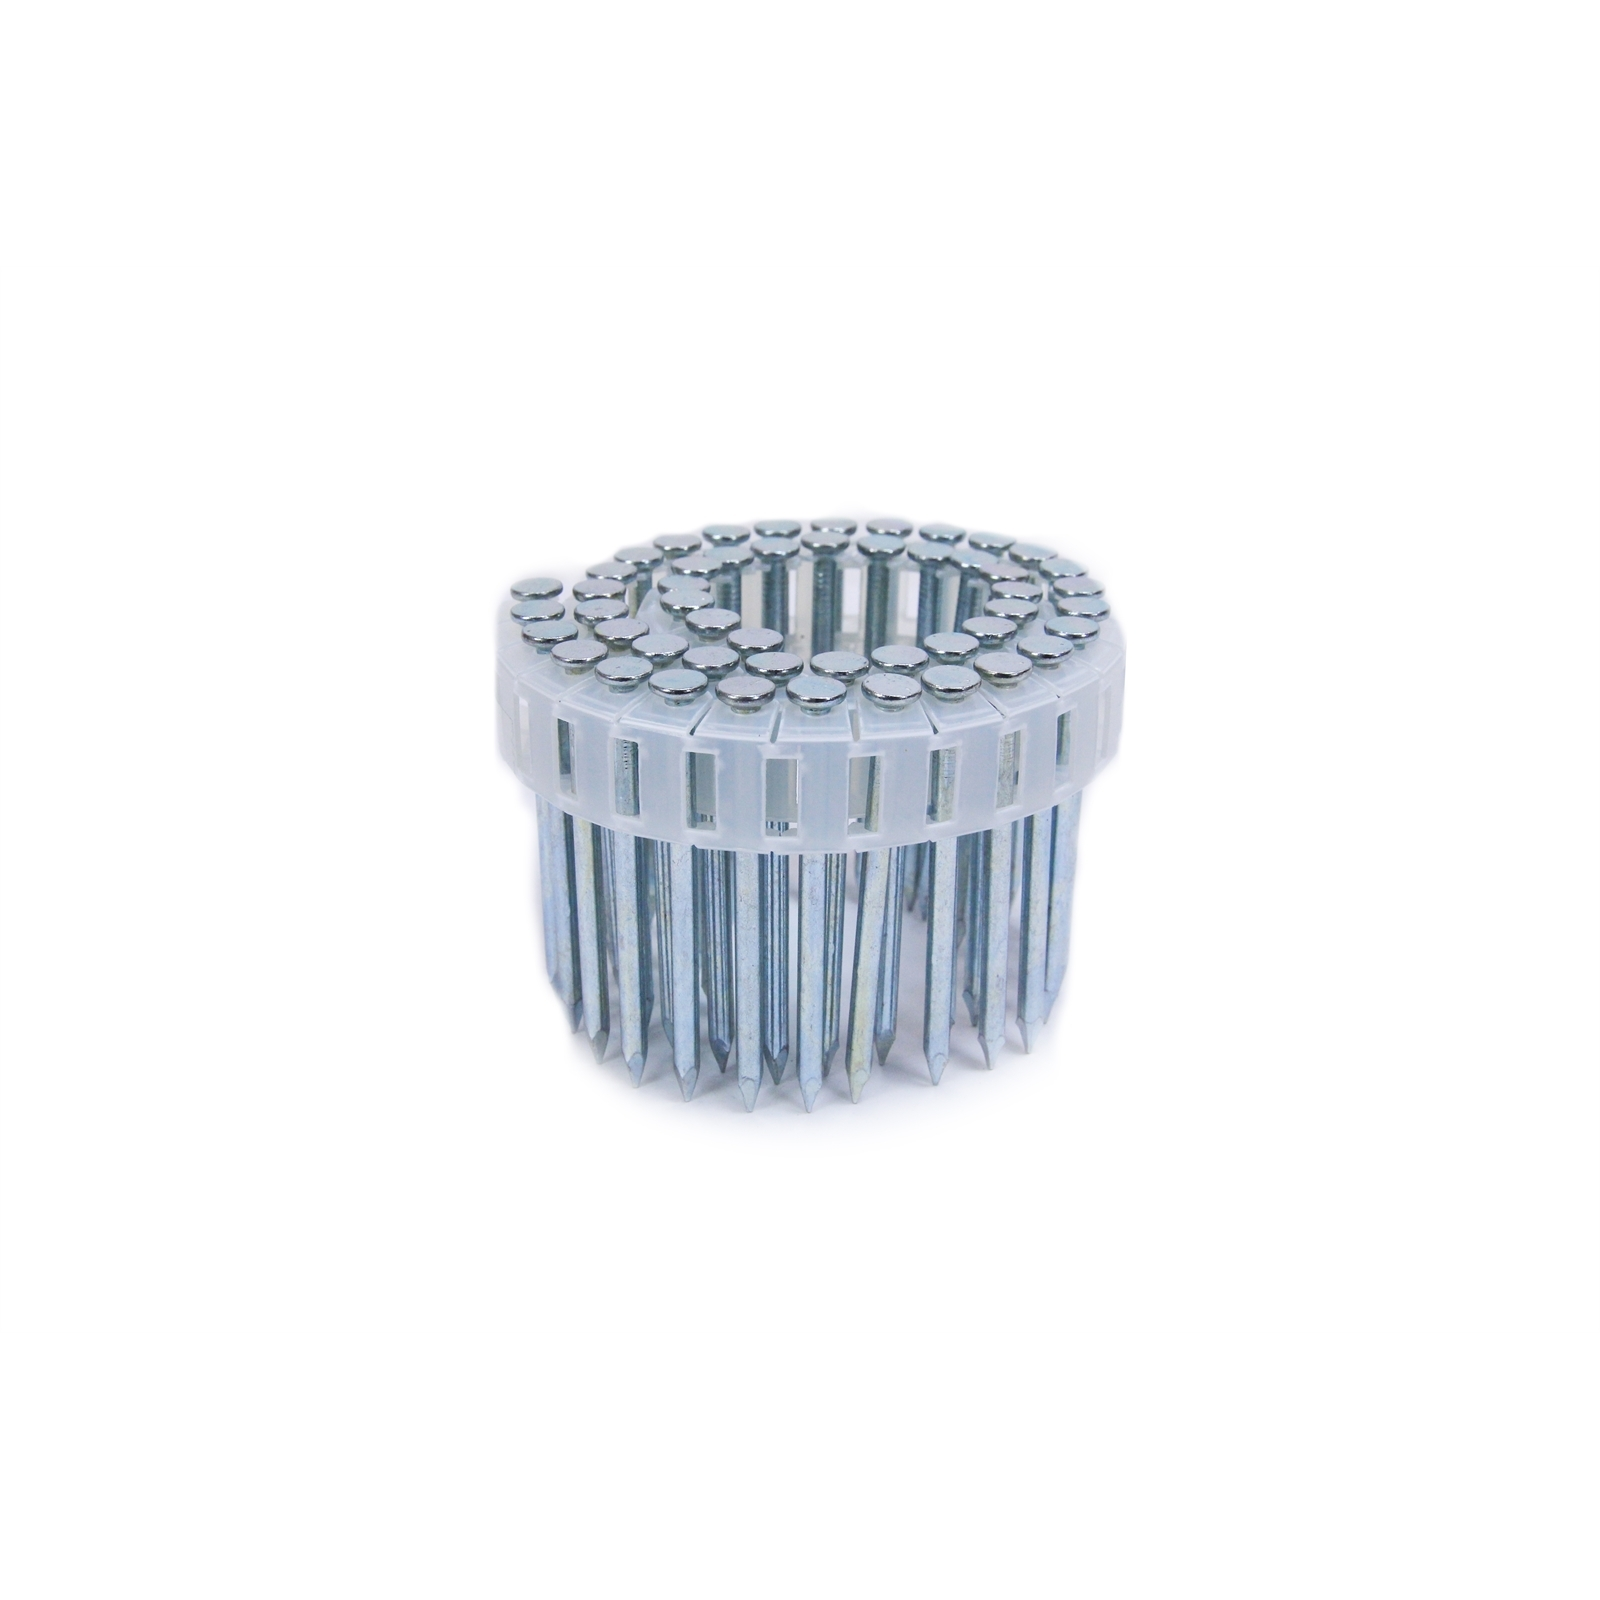 Airco 65 x 3.8mm Electro Galvanised Hardened Concrete Coil Nails - 1000 Pack